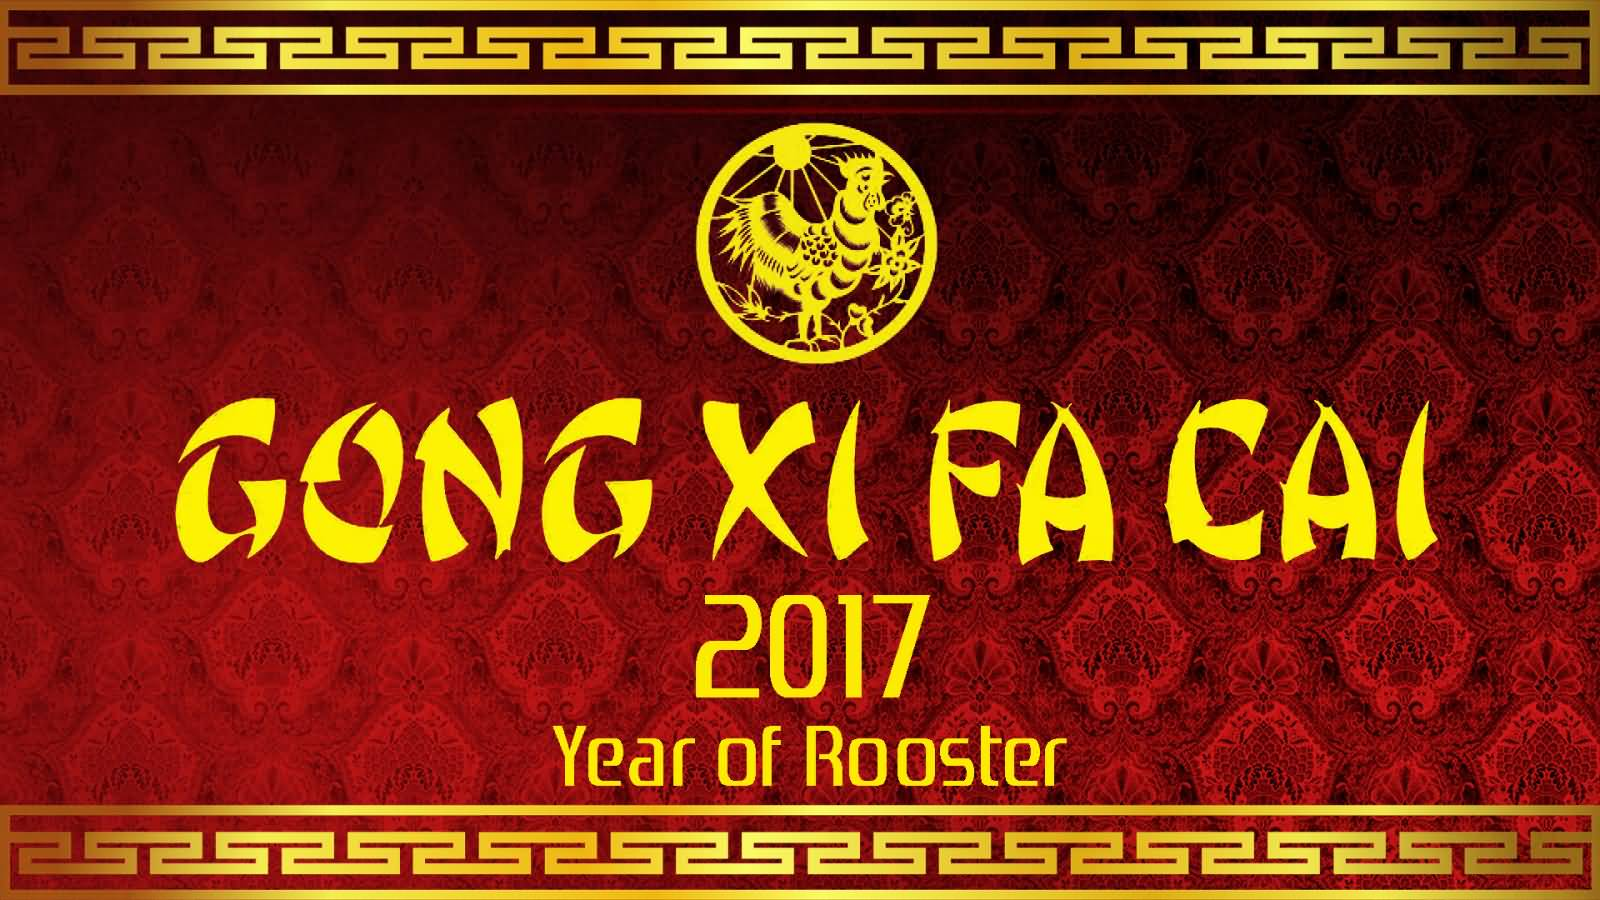 Ging Xi Fa Cai 2017 Year Of Rooster